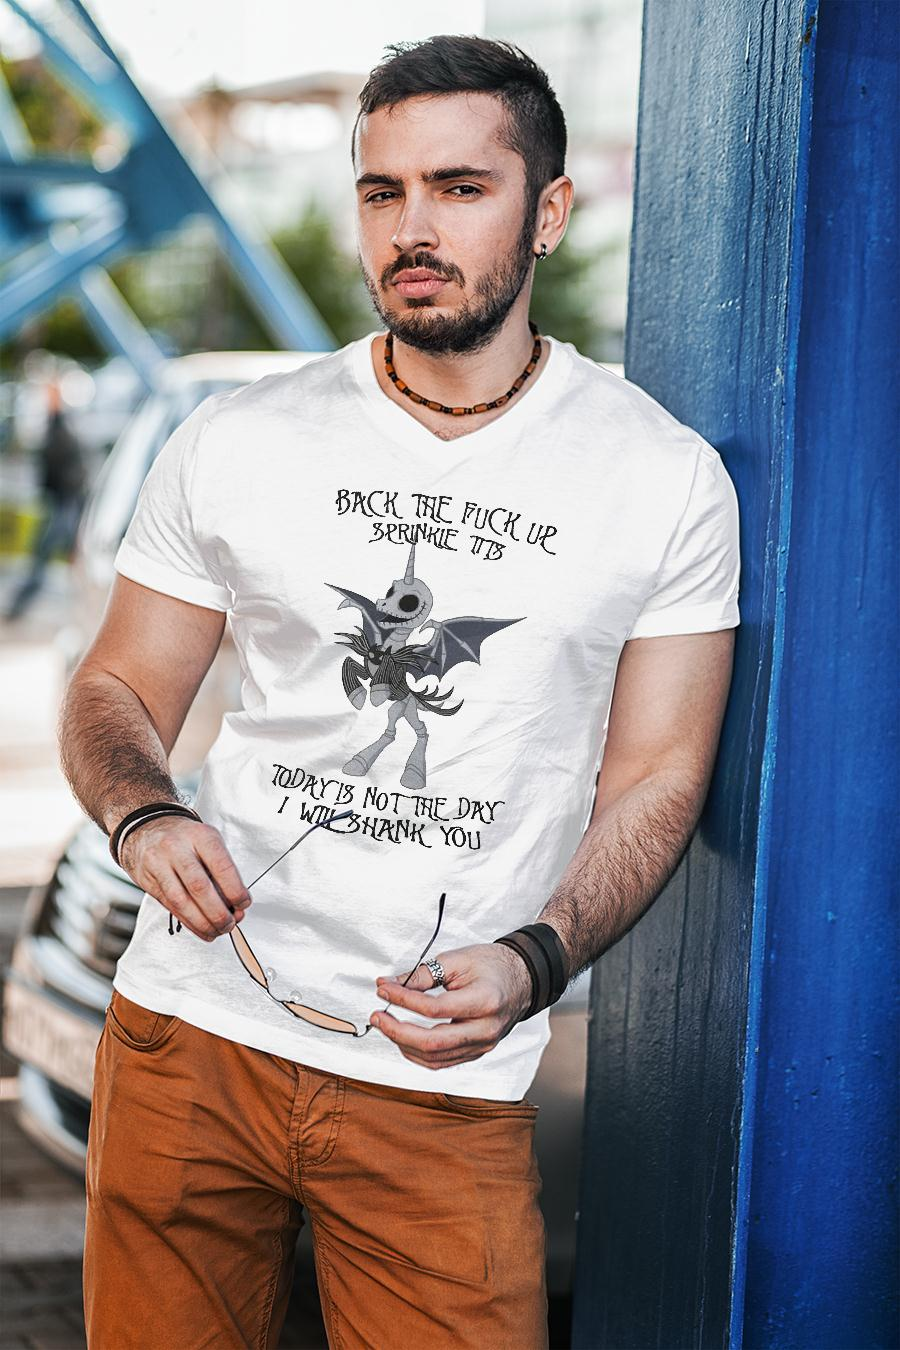 Jack Skellington unicorn back the fuck up sprinkle tits today is not the day shirt unisex